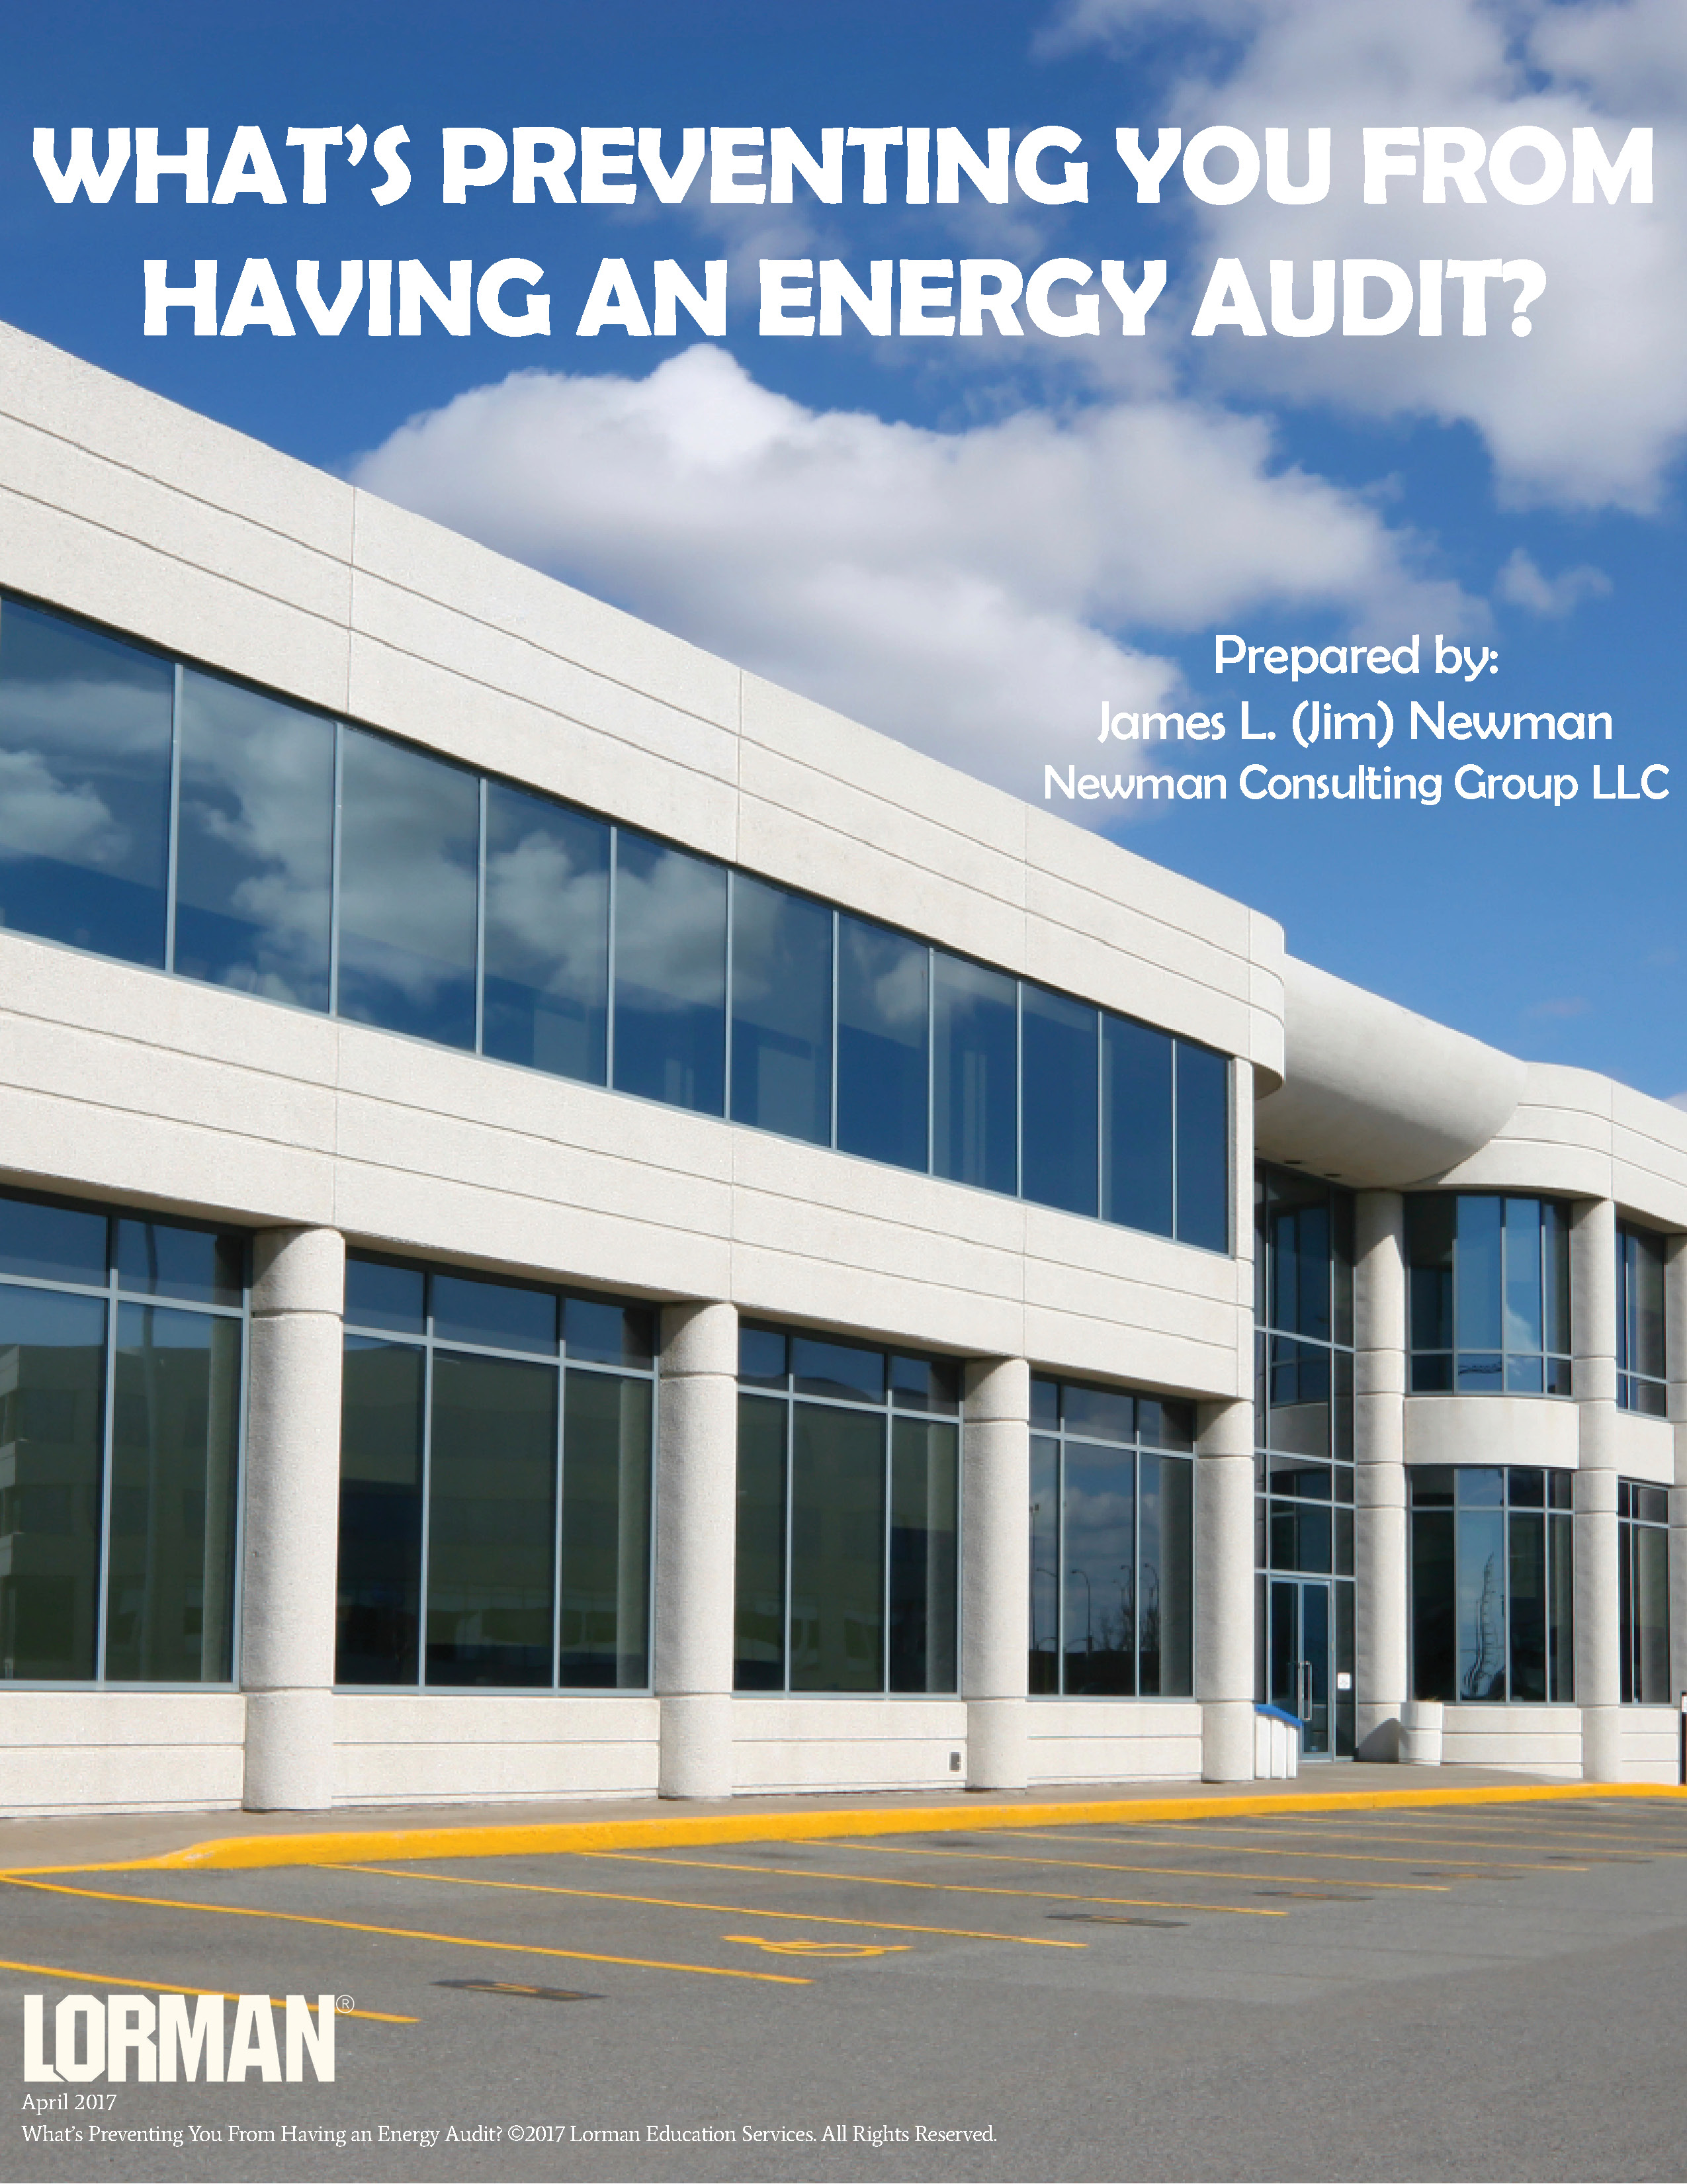 What's Preventing You From Having an Energy Audit?